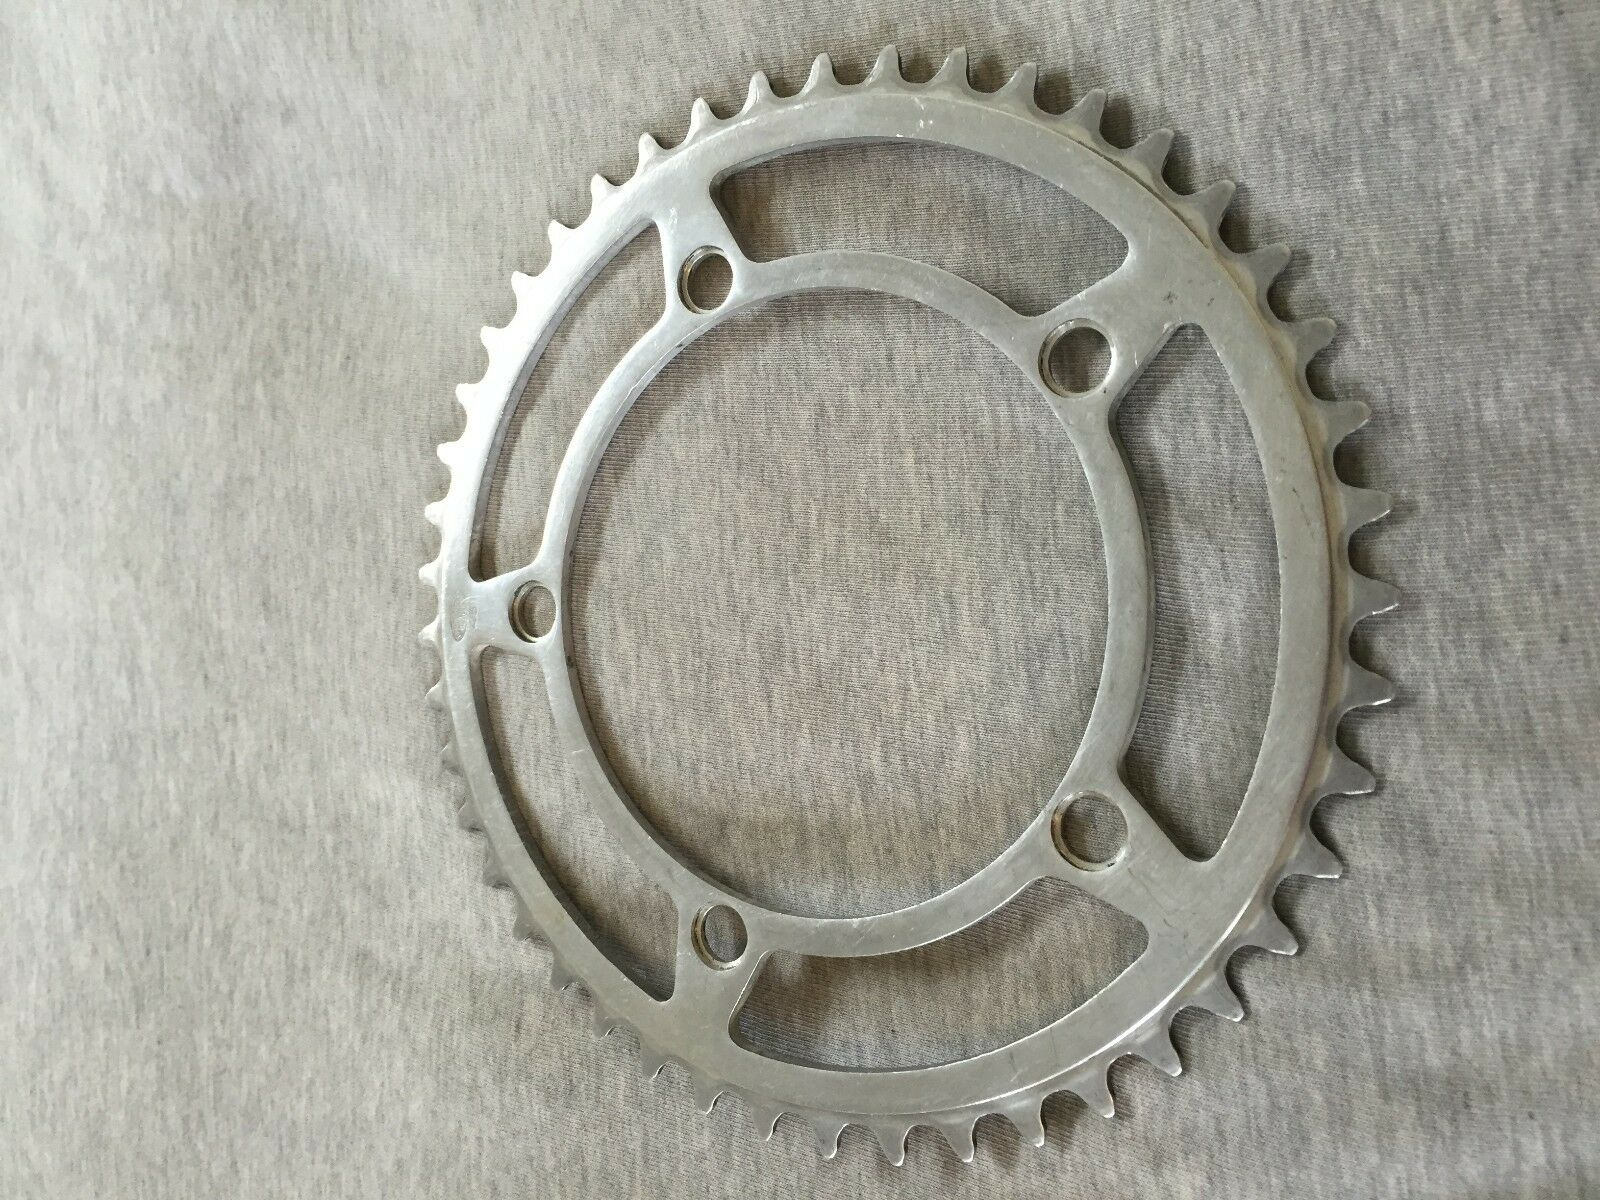 Vintage Stronglight 93 45t chainring 122 BCD 60s era